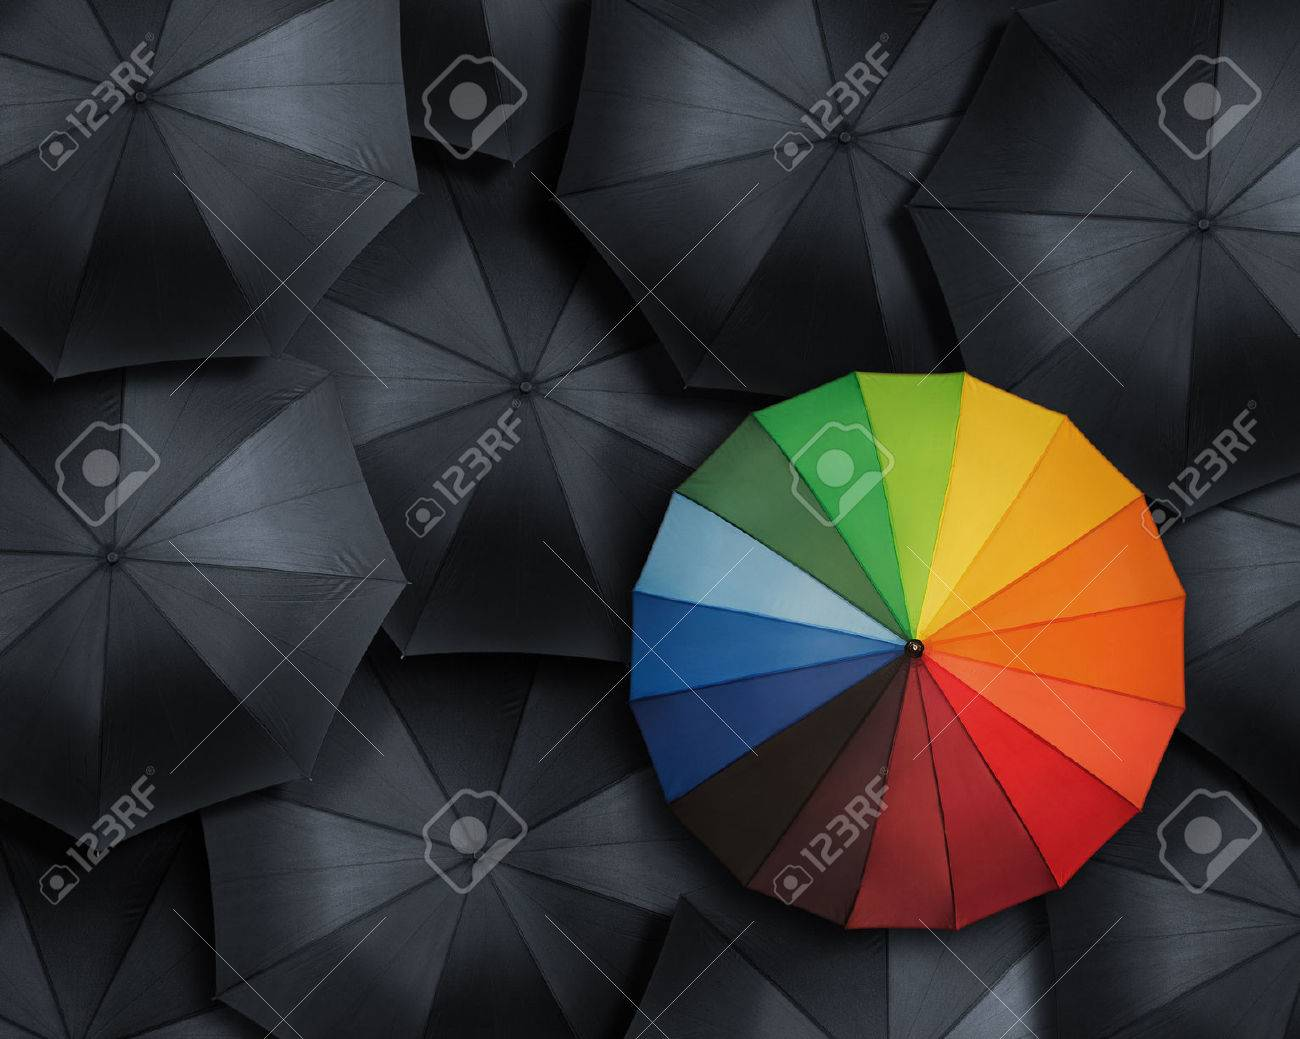 Standing out from the crowd, high angle view of colorful umbrella over many black ones - 31475656